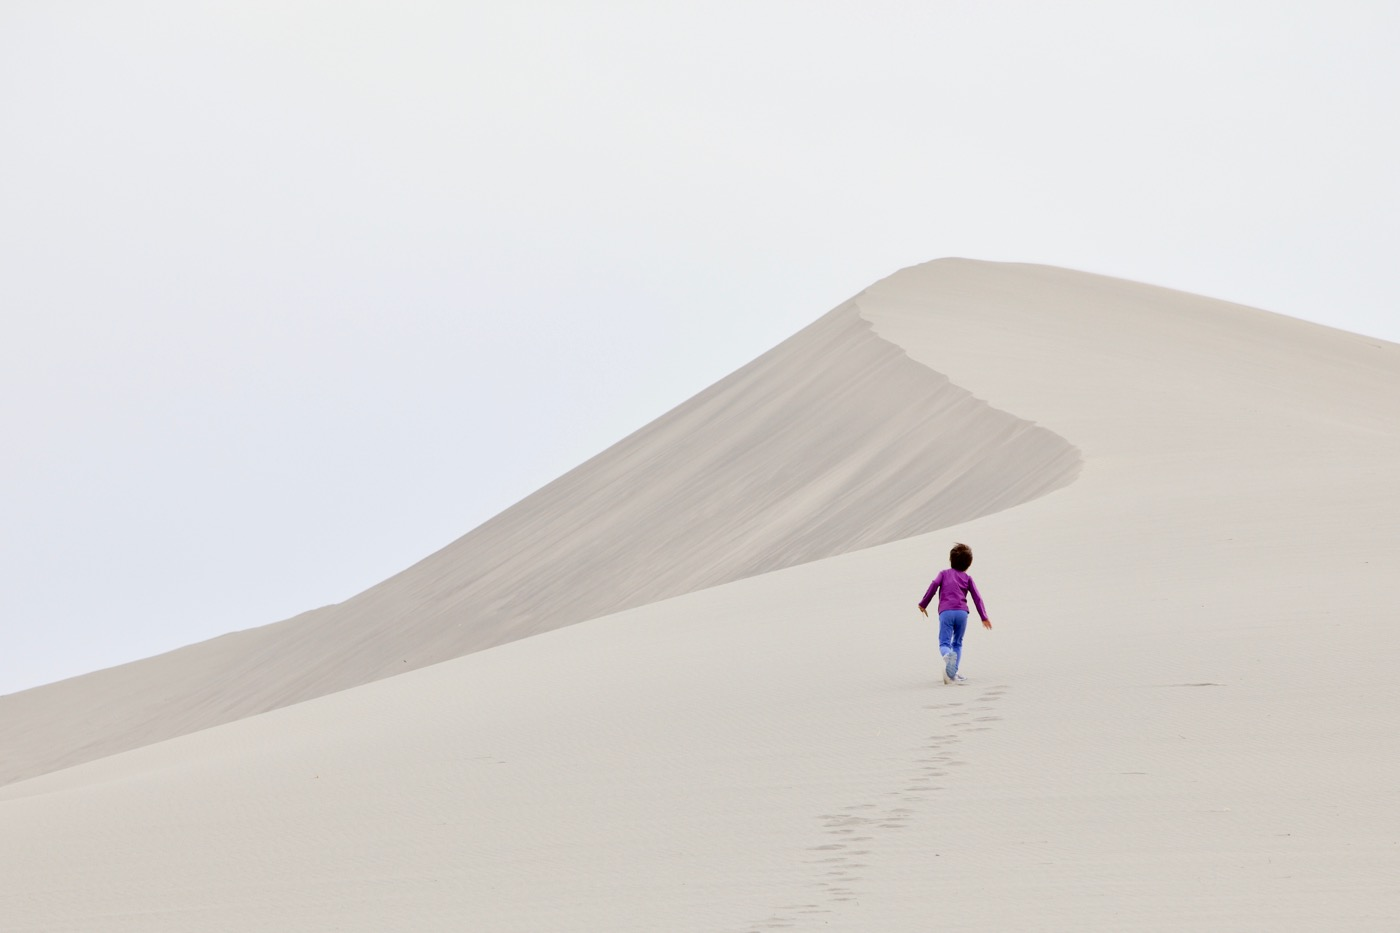 Heidi hiking ahead, Bruneau Sand Dunes